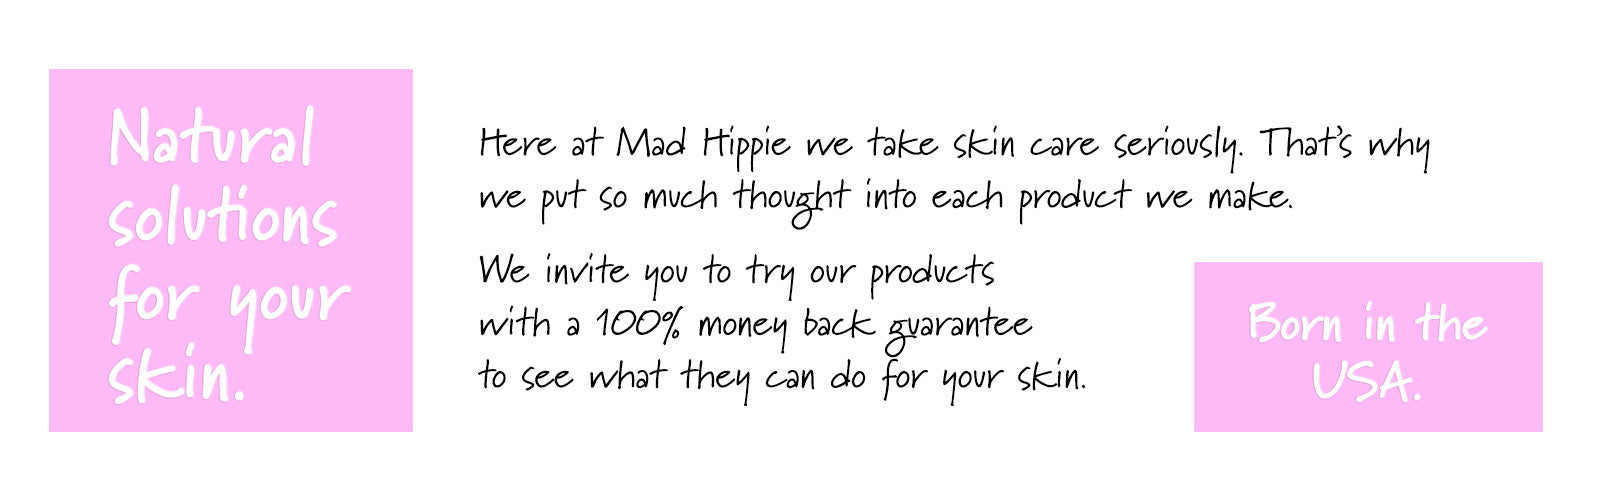 Here at Mad Hippie we take skin care seriously. That's why we put so much thought into each & every product we make. We invite you to try our natural skin care products with a 100% money back guarantee to see what they can do for your skin.